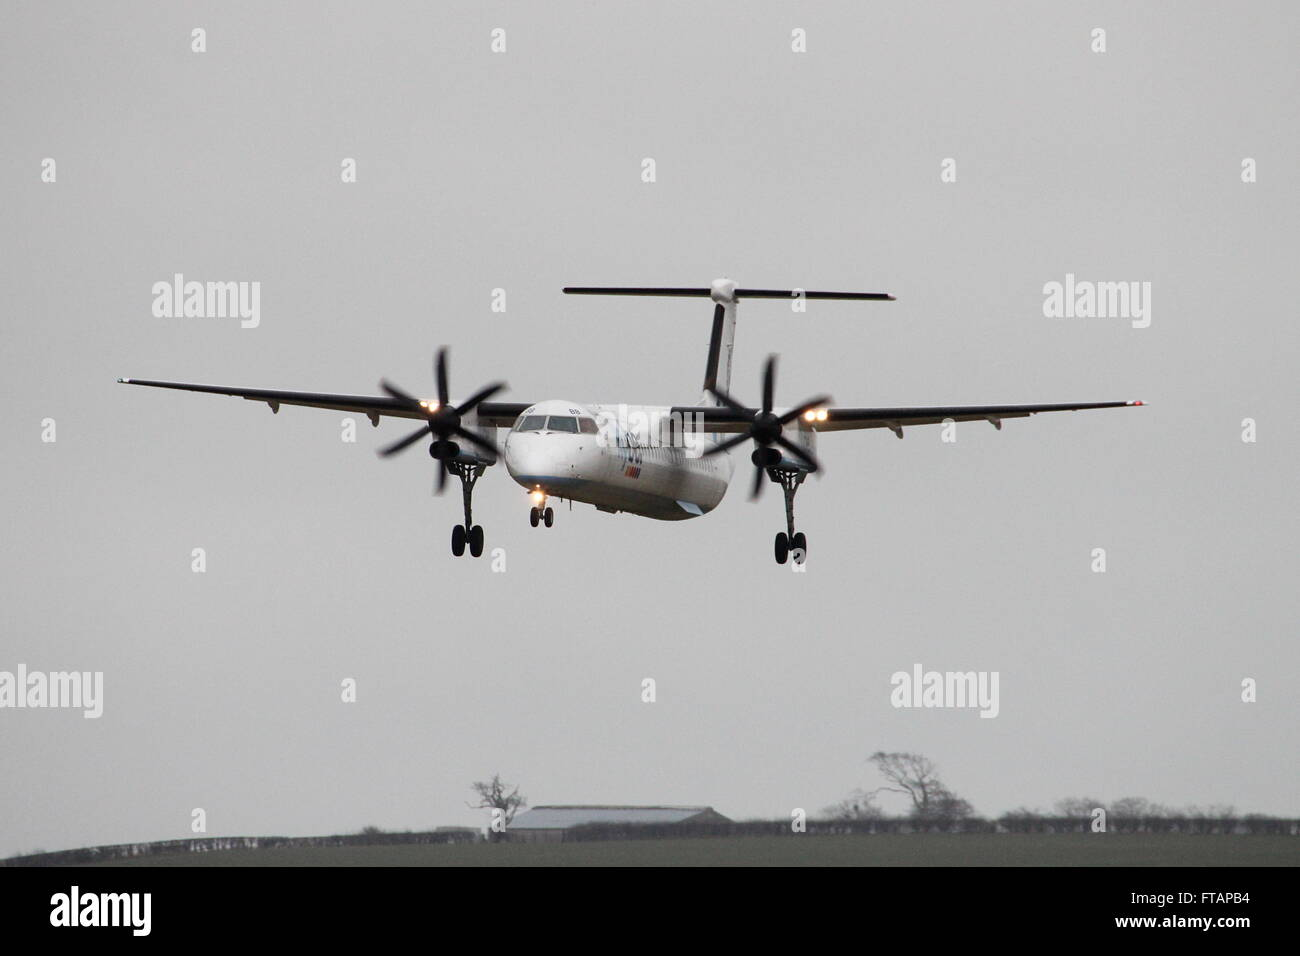 G-FLBB, a de Havilland DHC-8-400 (or Bombardier Q400) operated by the airline Flybe, during training at Prestwick - Stock Image